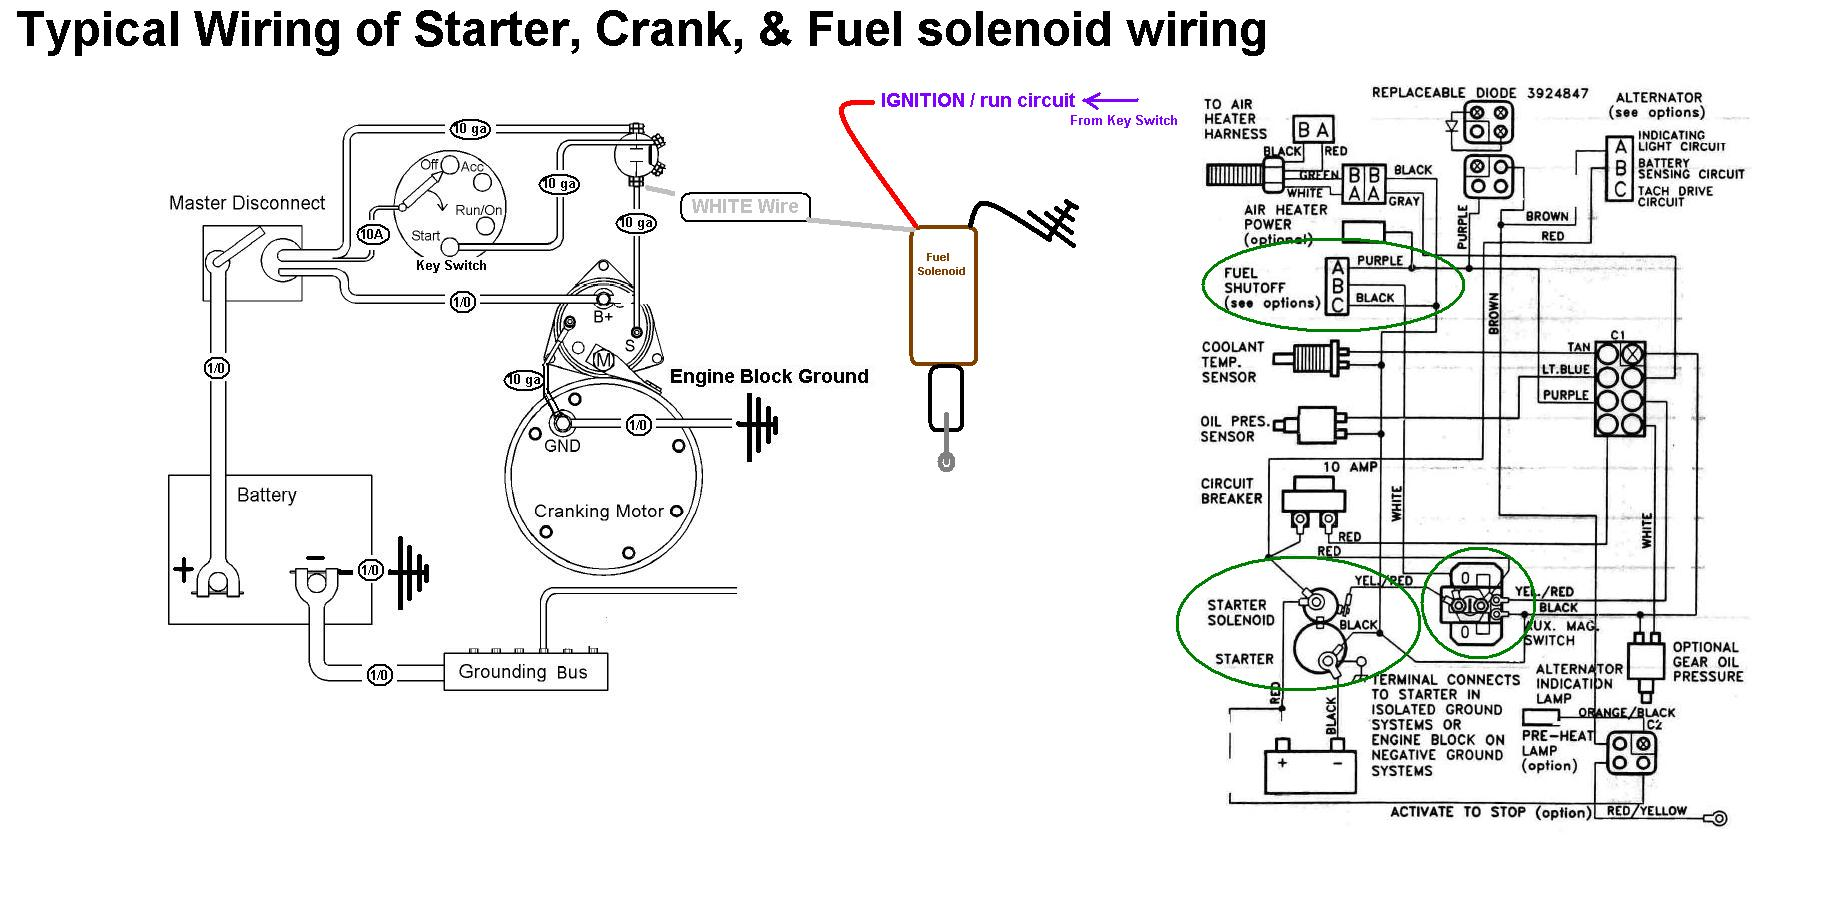 mins fuel shut off solenoid wiring diagram